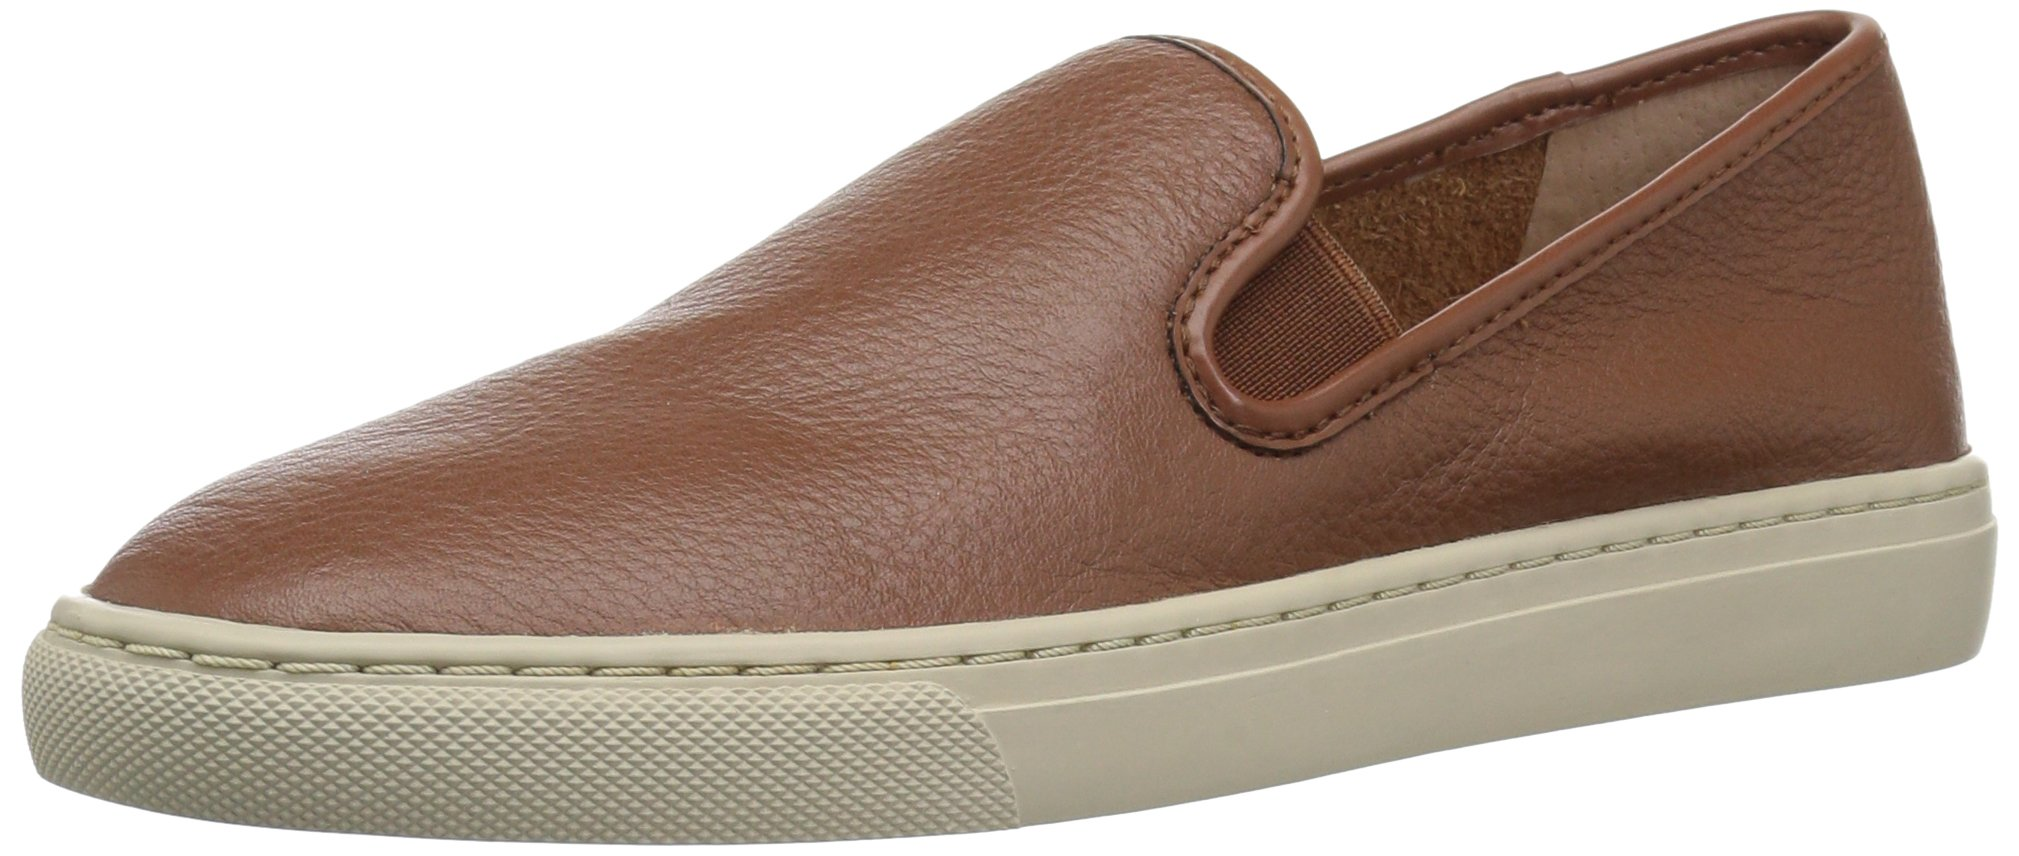 206 Collective Women's Cooper Perforated Slip-on Fashion Sneaker, Cognac Leather, 8.5 B US